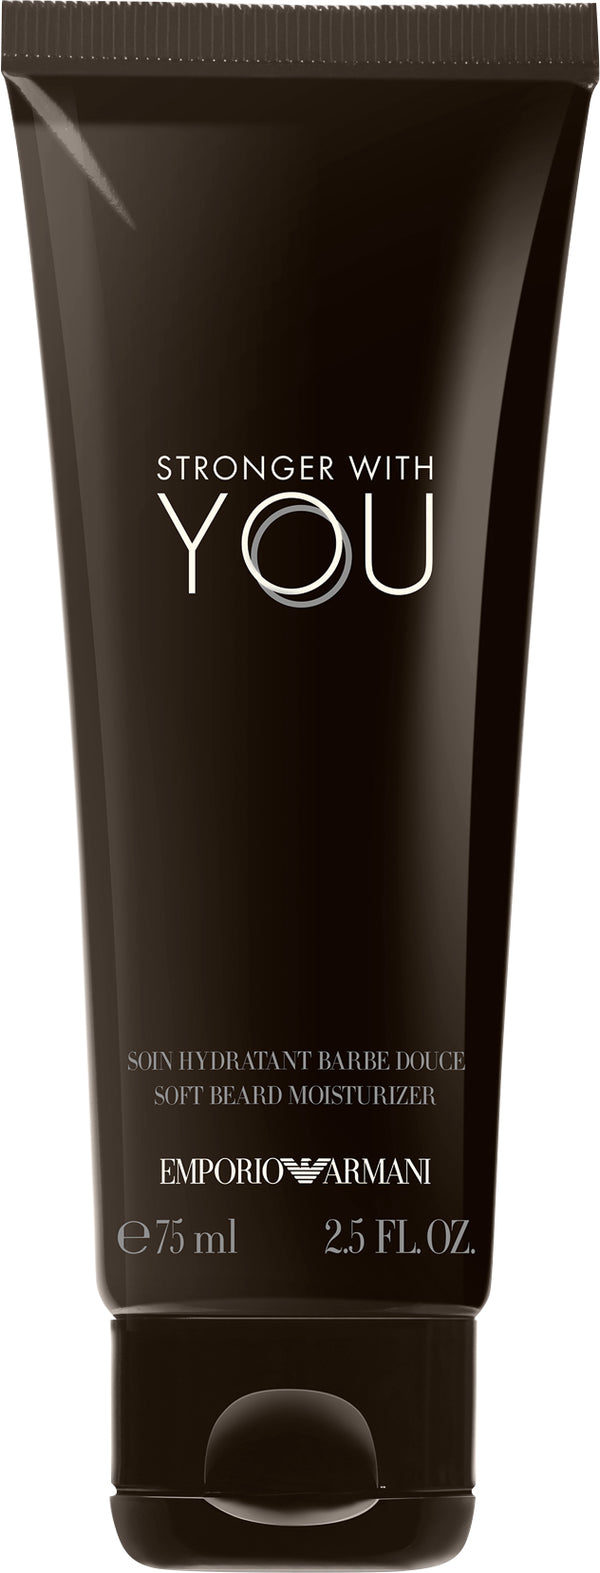 Stronger With YOU Soft Beard Moisturizer - Emporio Armani